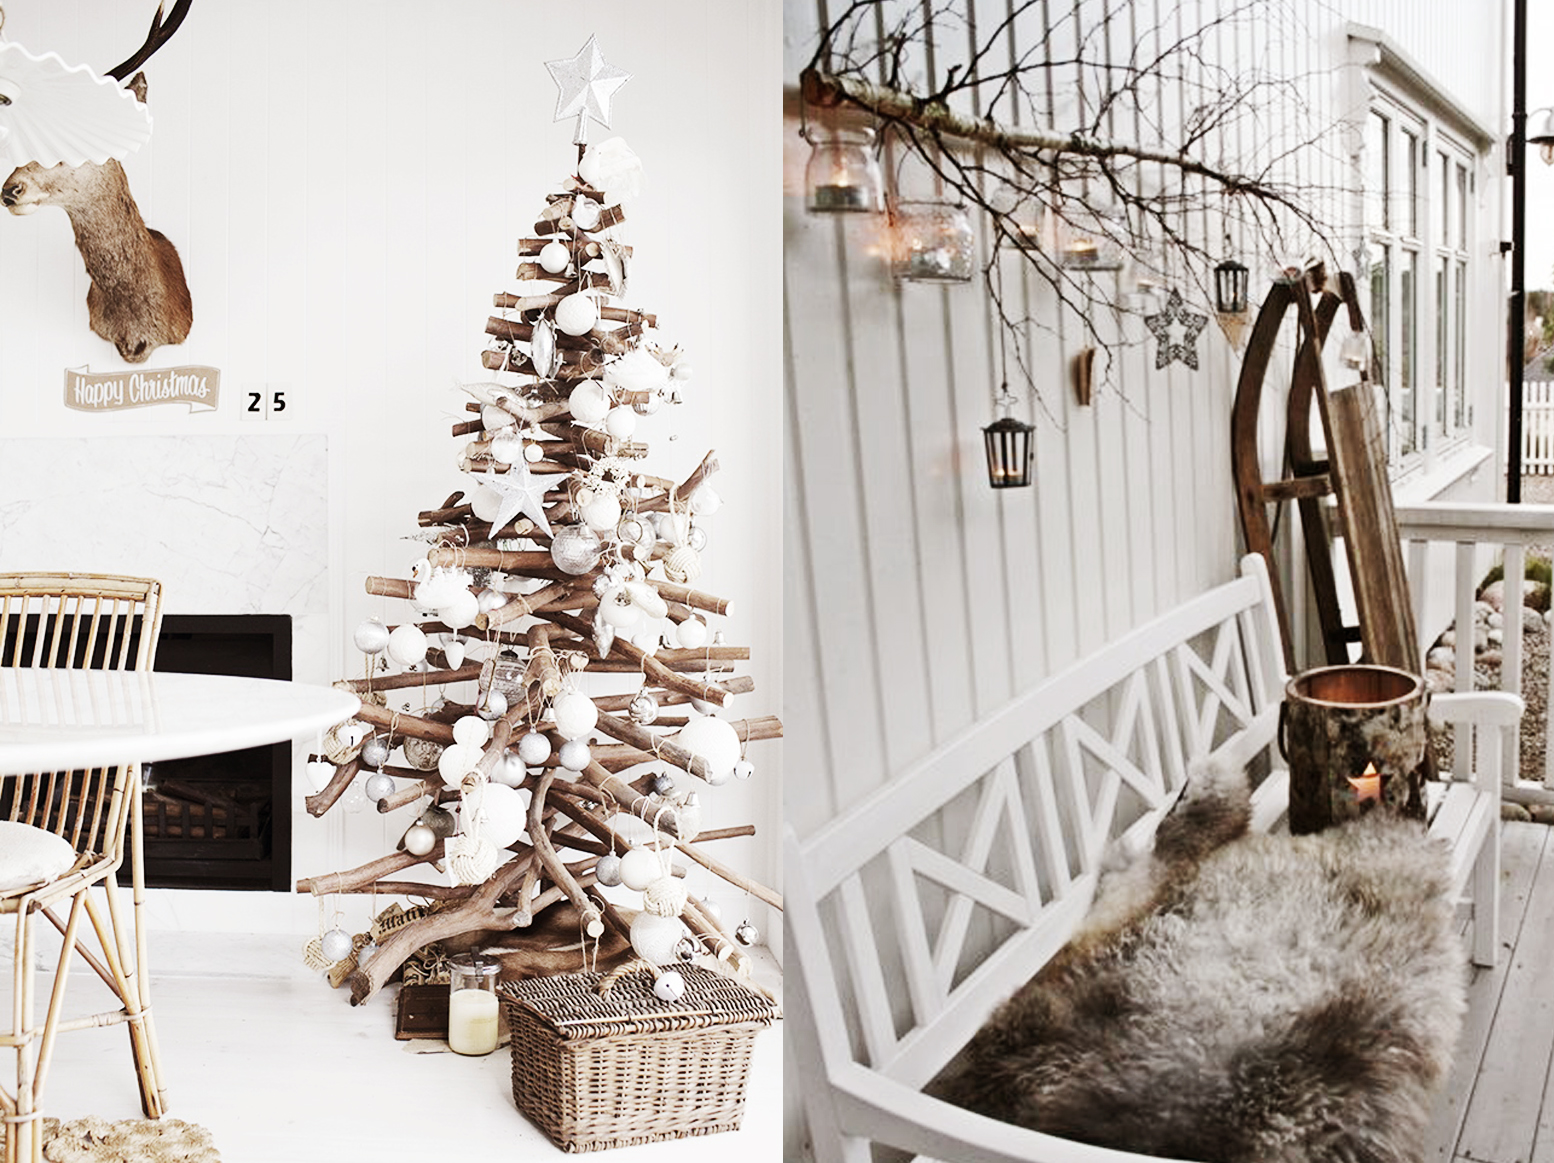 Christmas Decoration Inspiration Diy Xmas Gift Ideas Shopping Cool Presents Tree Winter Holiday